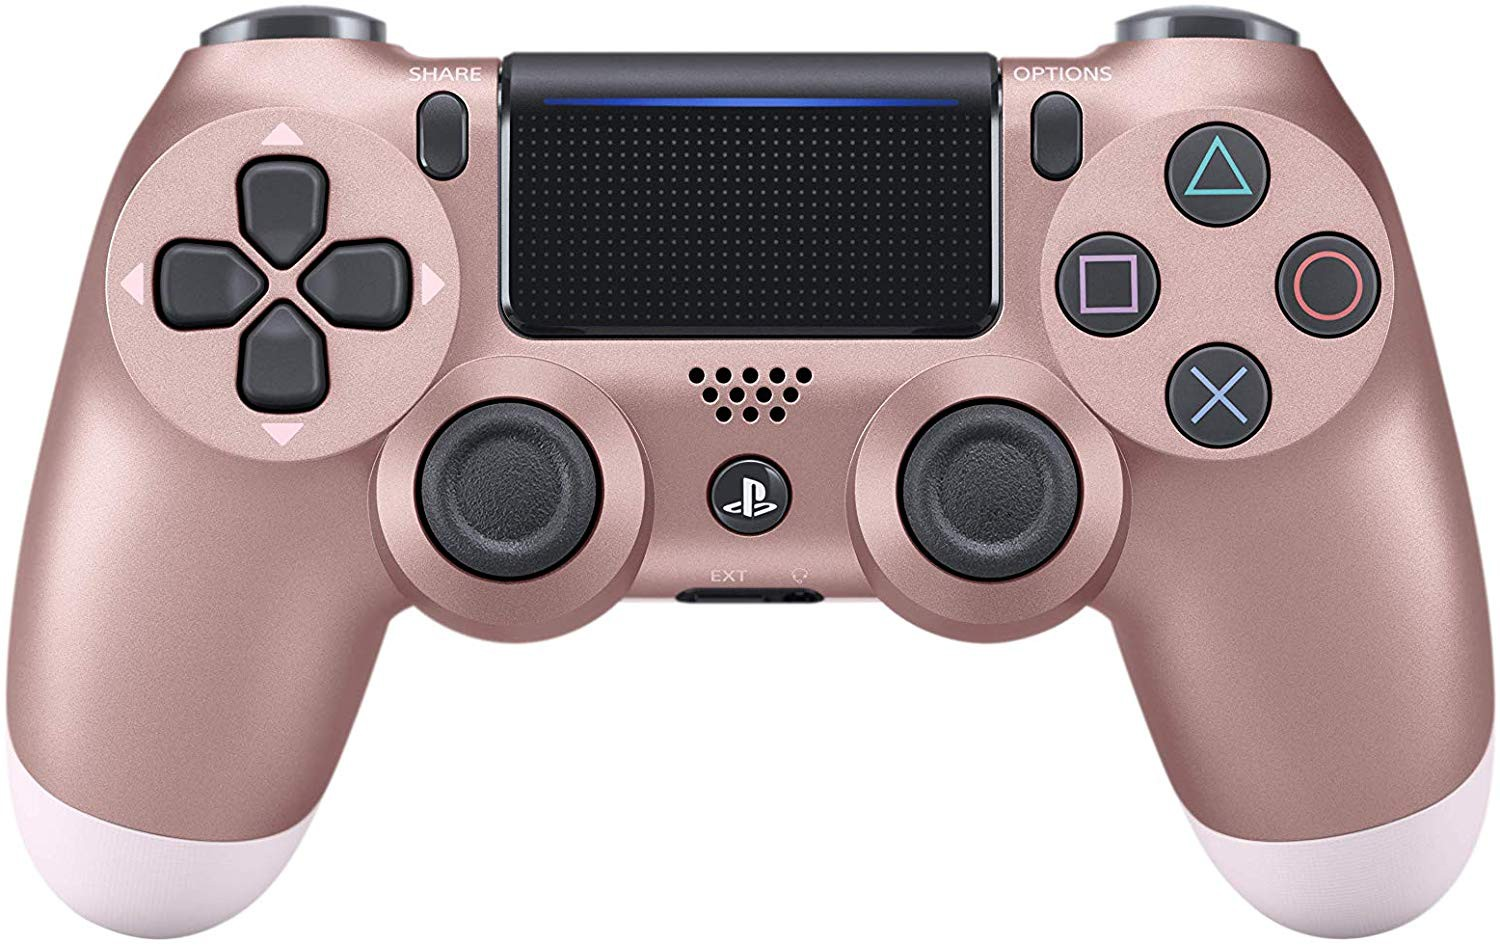 Sony PlayStation DualShock 4 V2 Controller - Rose Gold